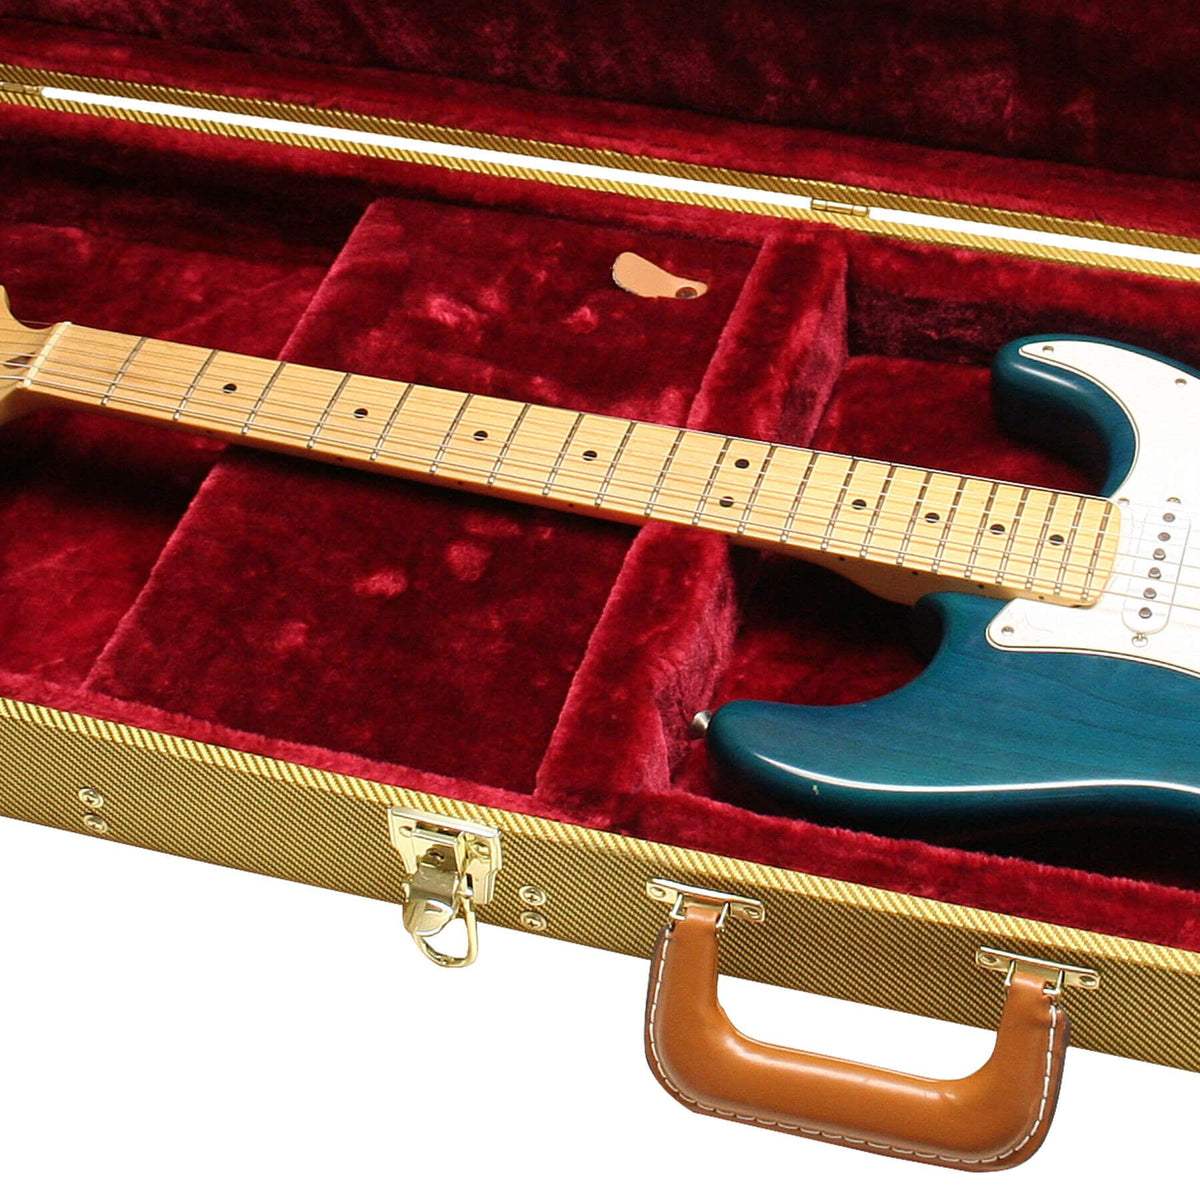 Gator Cases Tweed Delexe Electric Guitar Wood Case for Ibanez GRX20, IJX121, IJX40 Electric Guitars